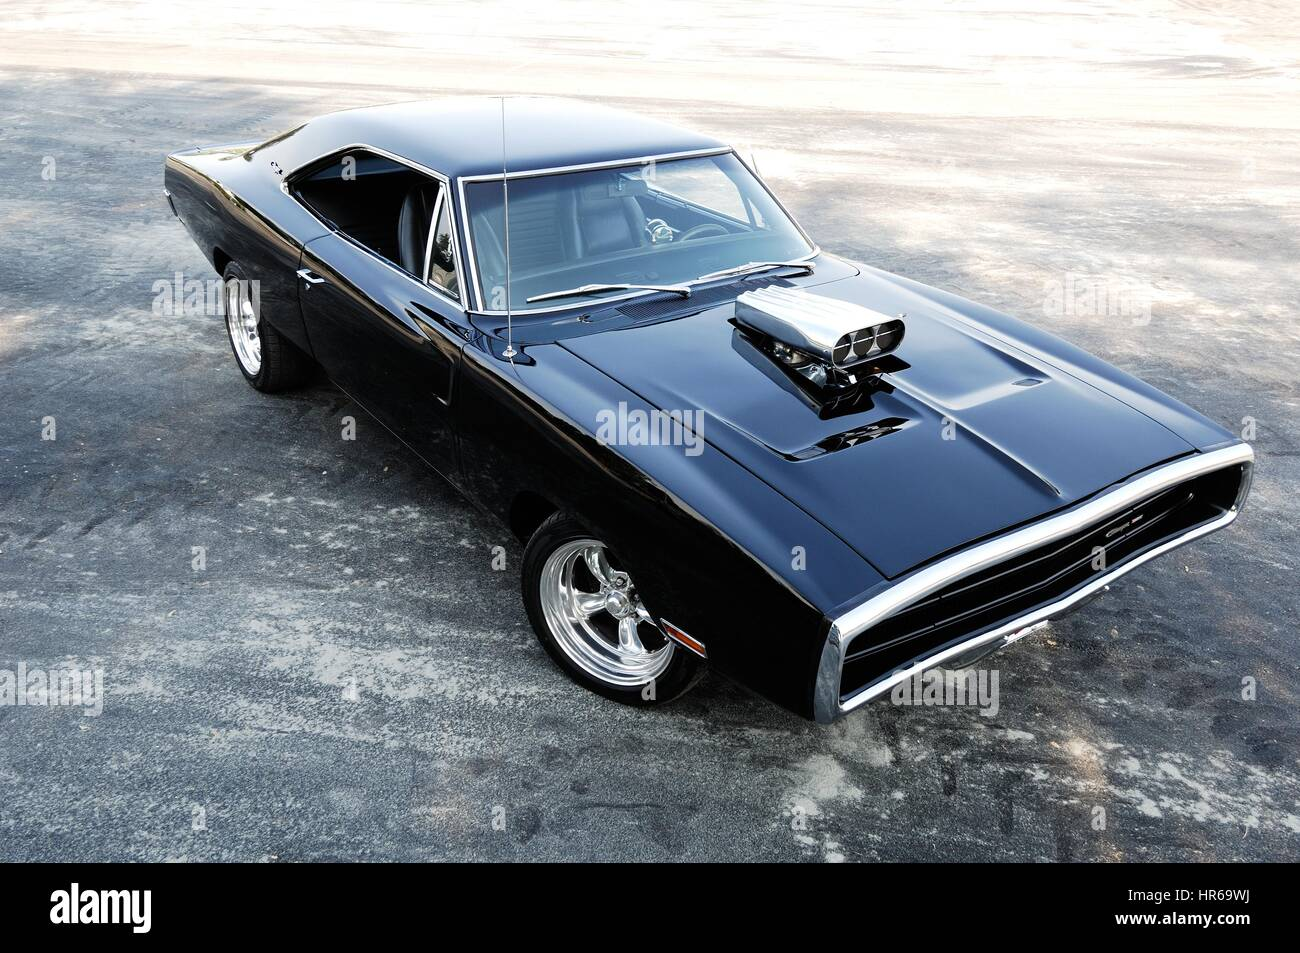 Dodge charger 1970 muscle car classic cars american with air intake on the hood stock